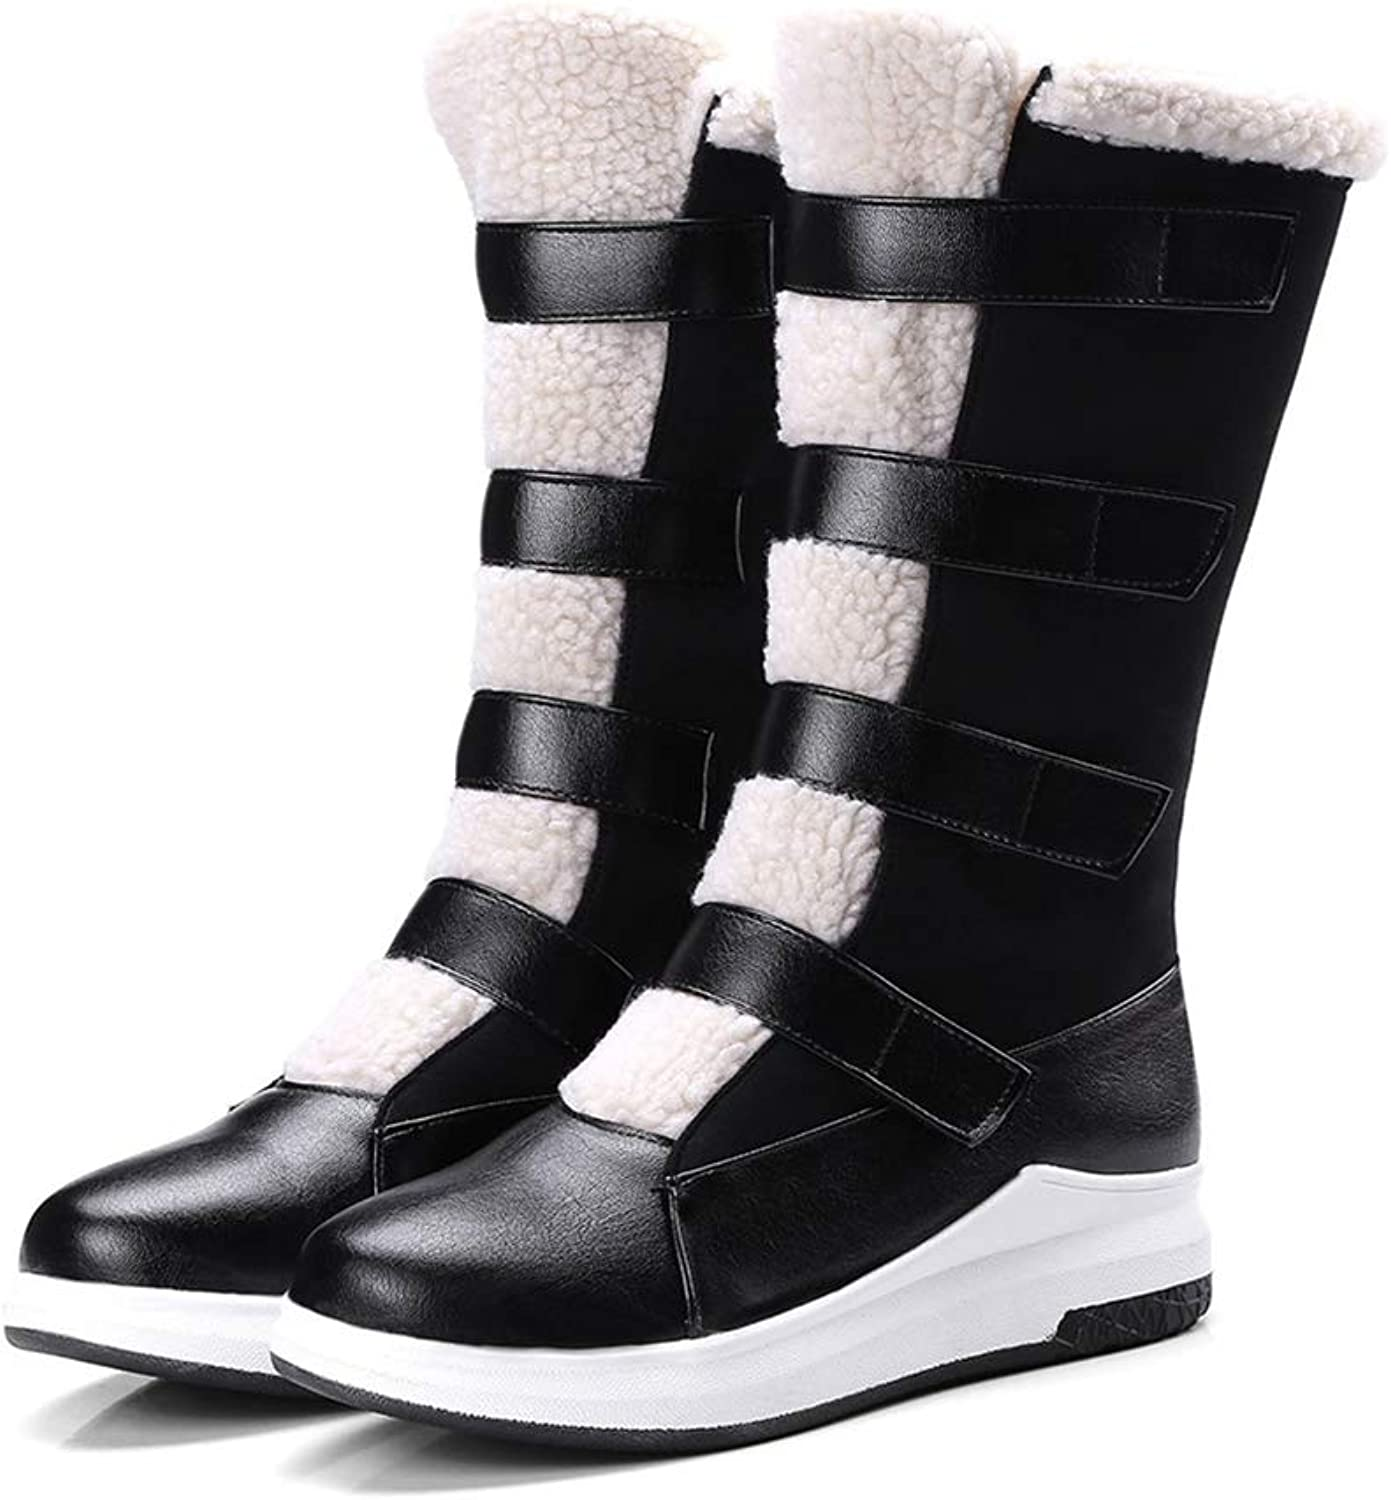 T-JULY Winter Women Round Toe Keep Warm Comfortable Boots Ladies Flat Black Brown Fashion Mid Calf Boots